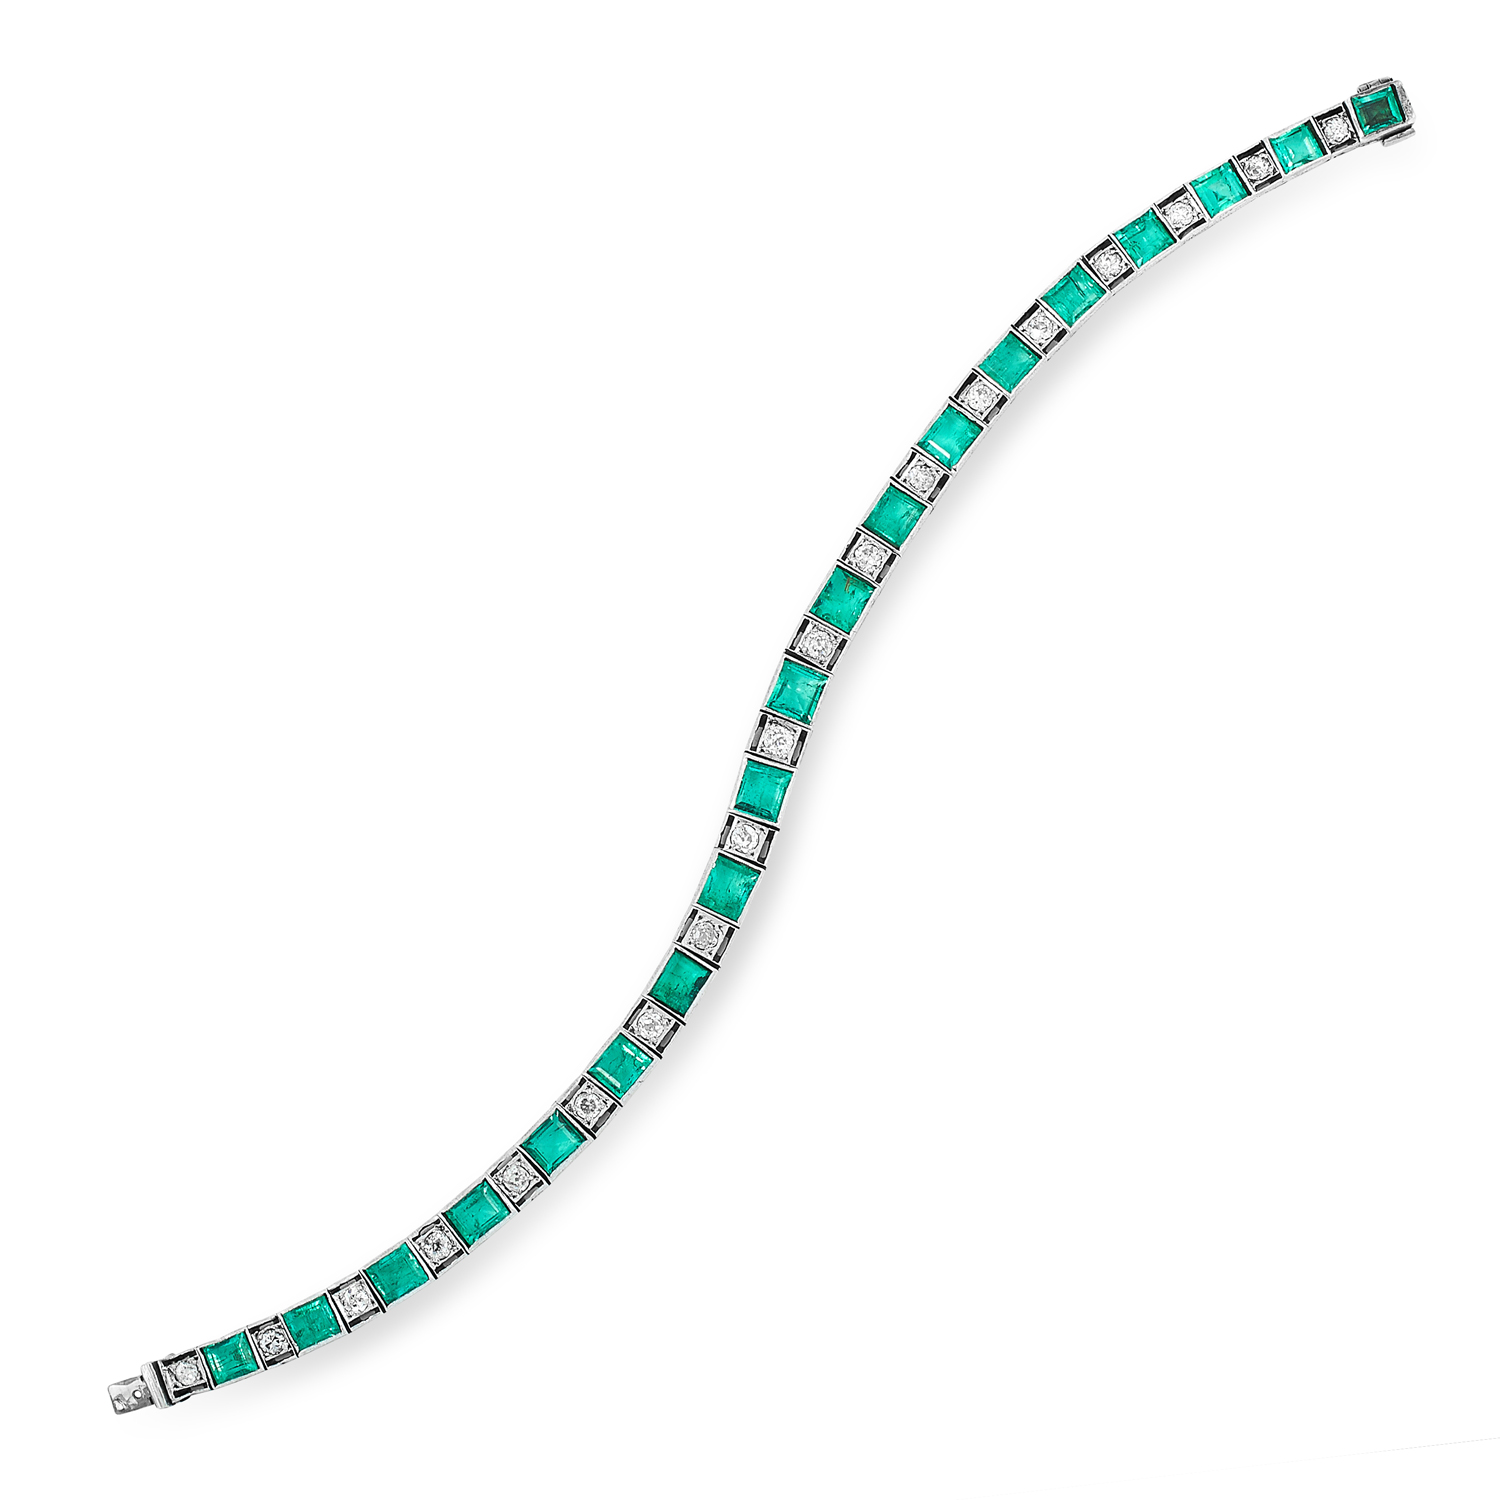 AN EMERALD AND DIAMOND LINE BRACELET set with round old cut diamonds and step cut emeralds, 19cm,